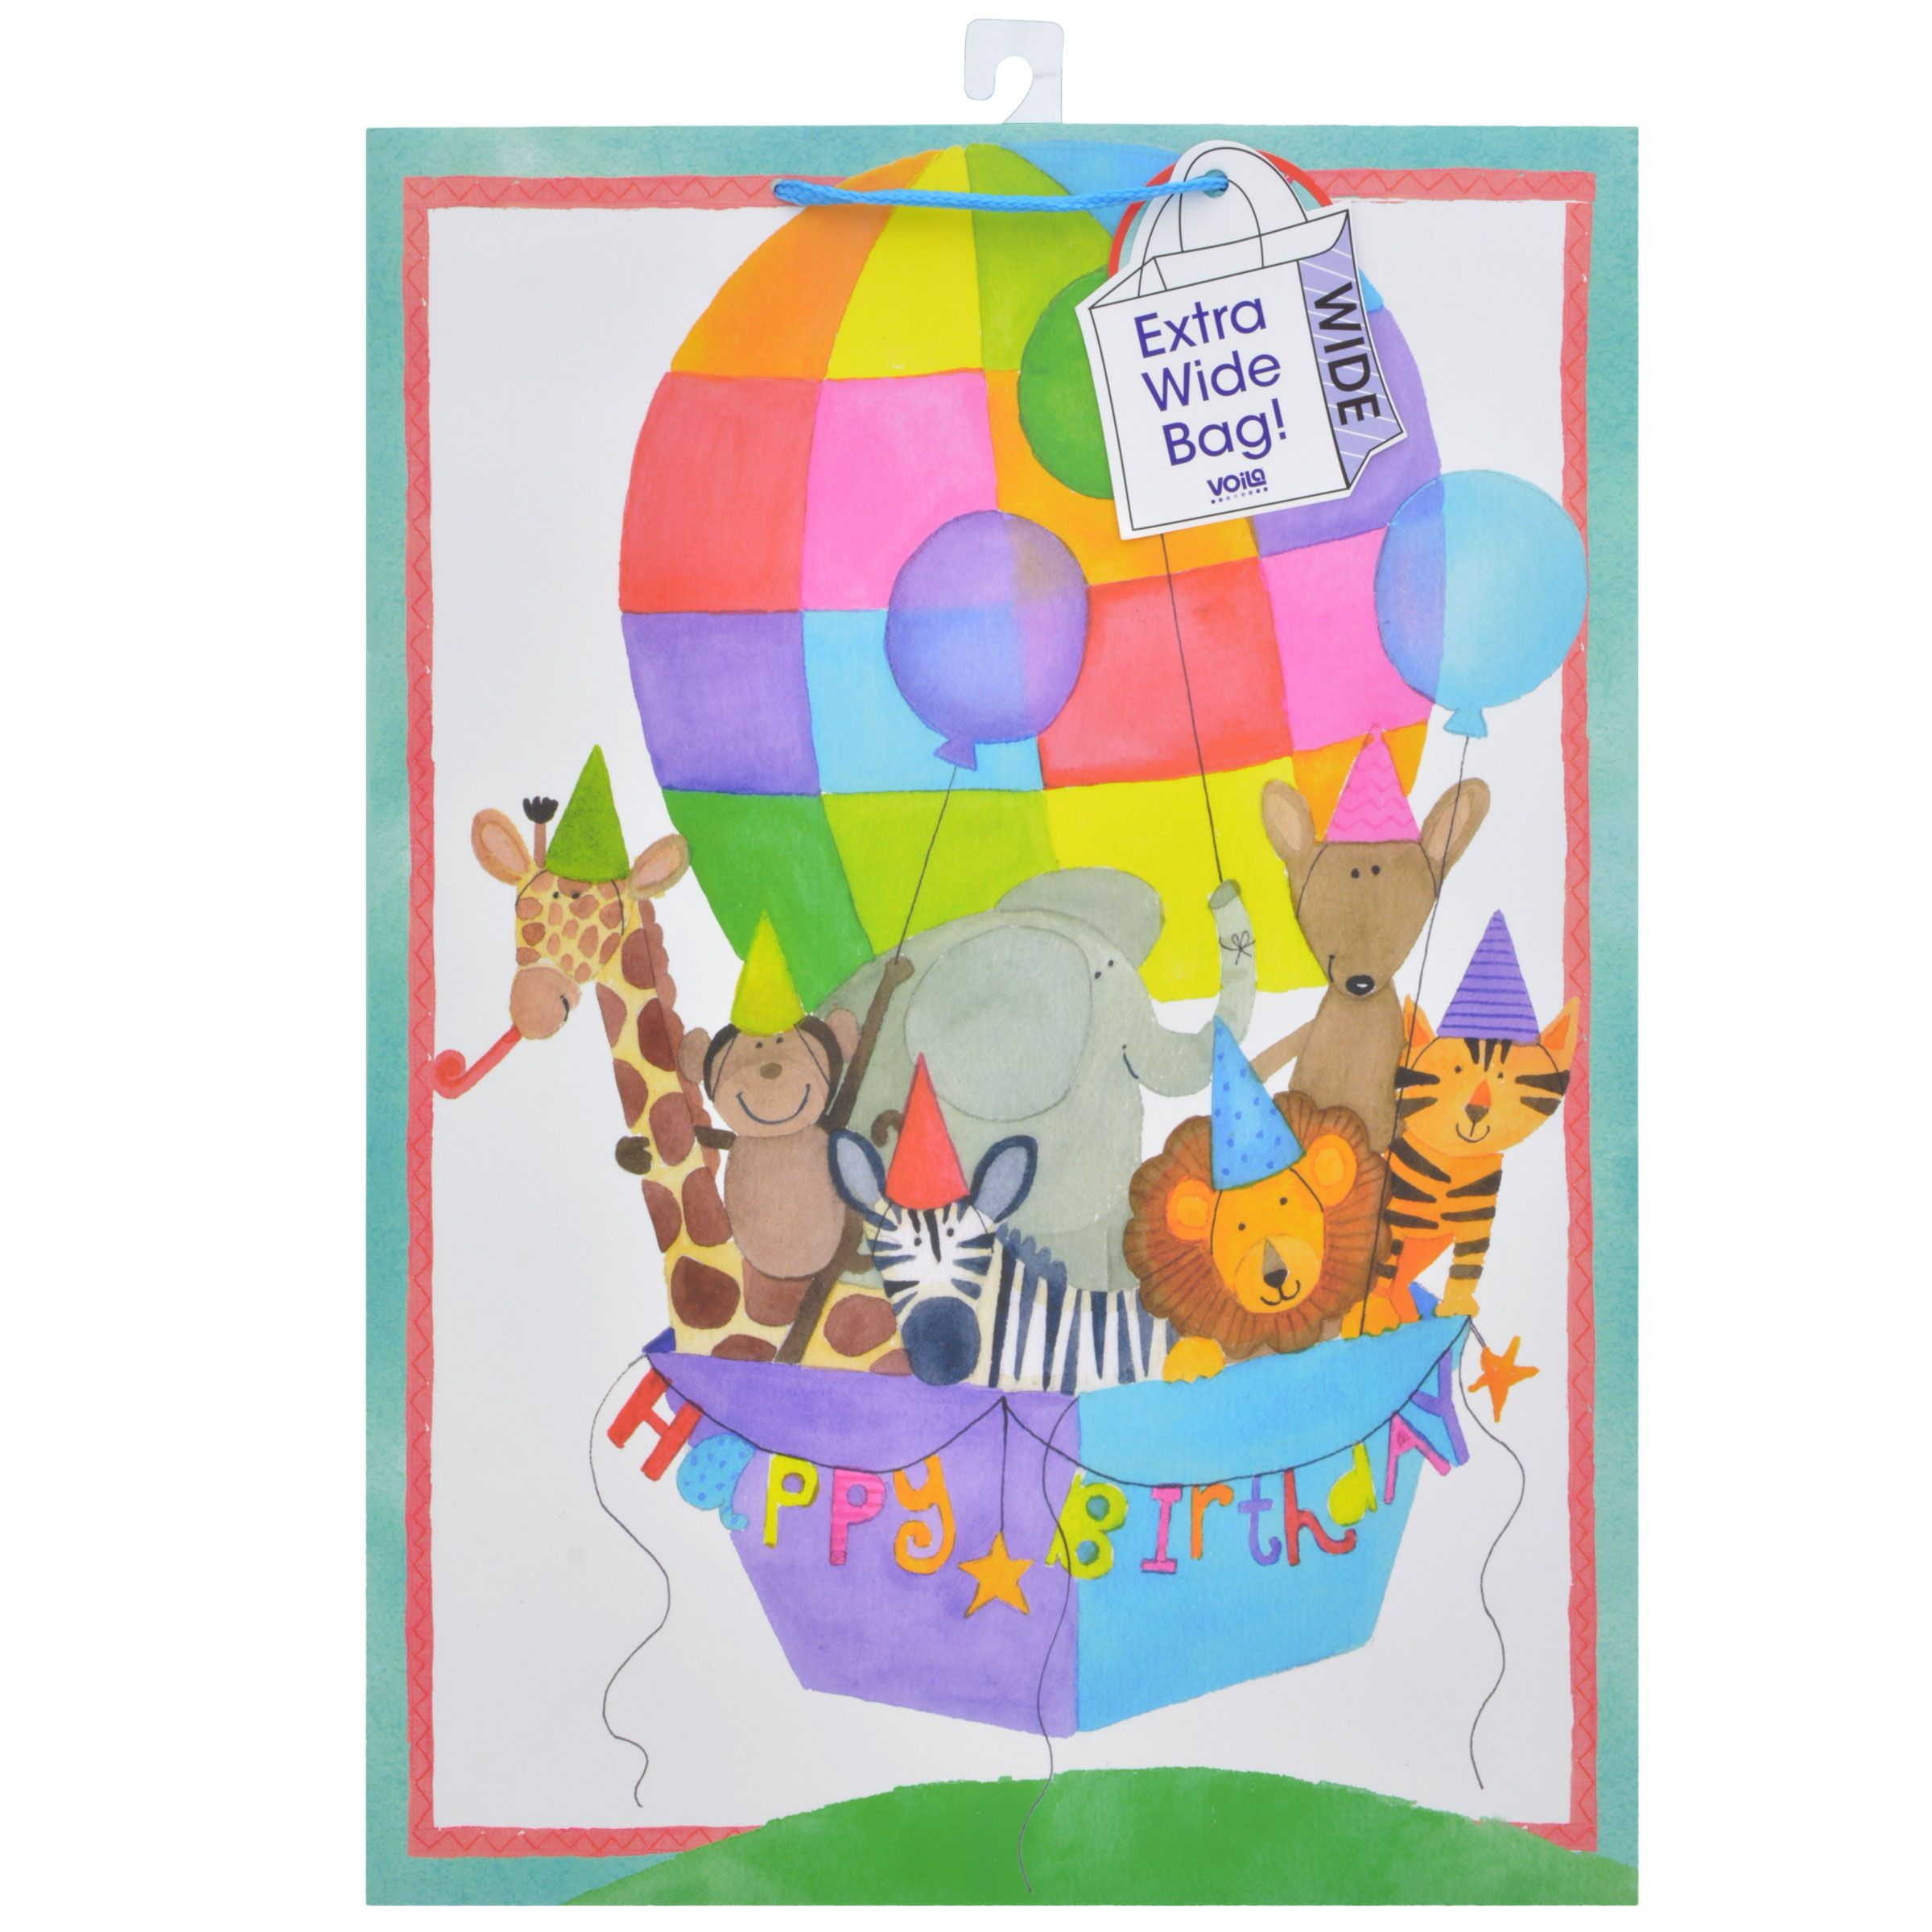 Bulk Voila Extra Large Youthful Animal Themed Birthday Gift Bags At DollarTree